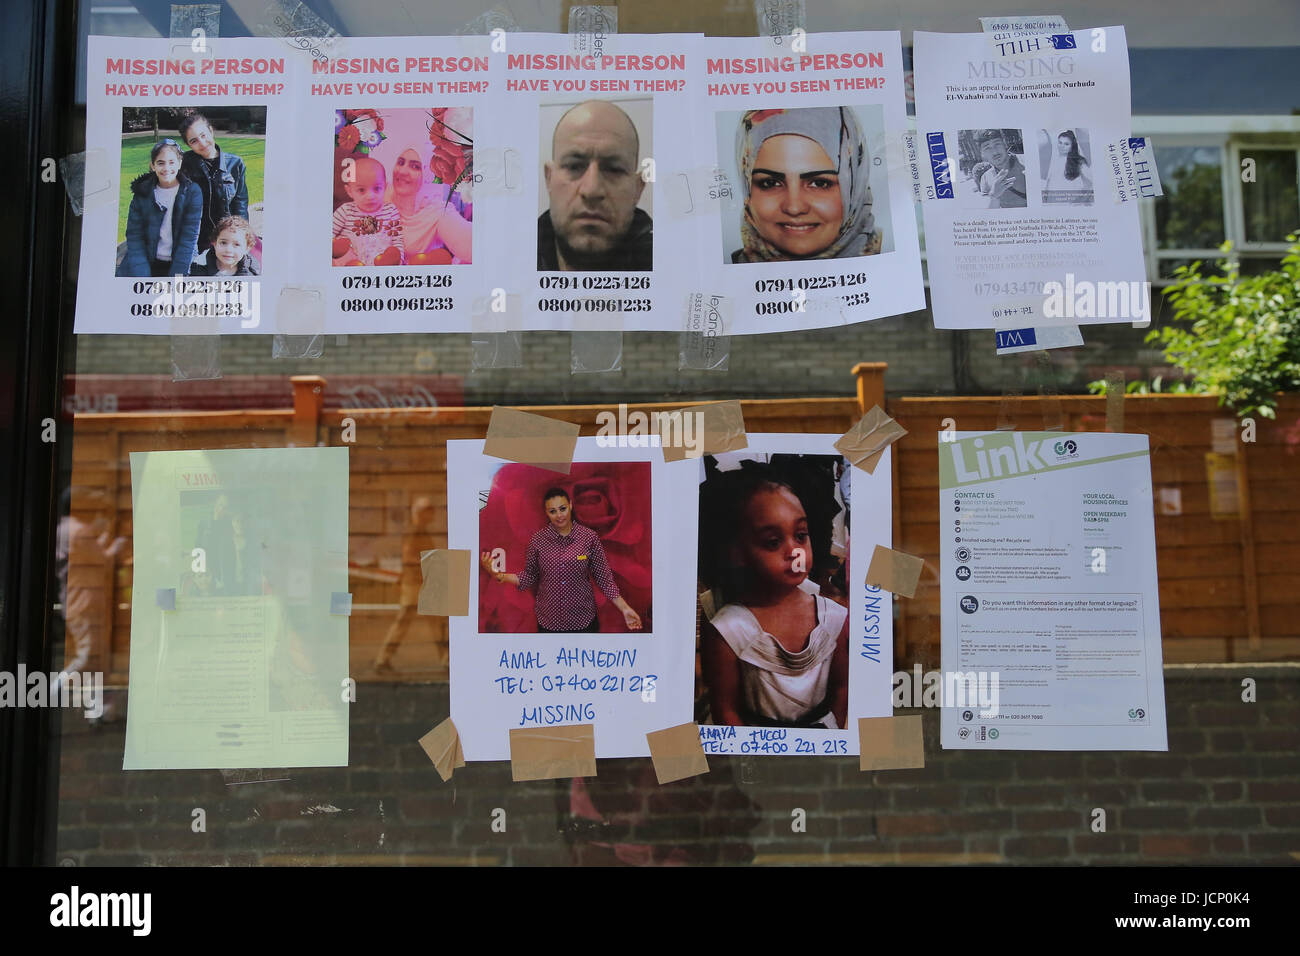 London, UK. 16th June, 2017. Posters of missing people around the Grenfell Tower block of flats in West London after - Stock Image